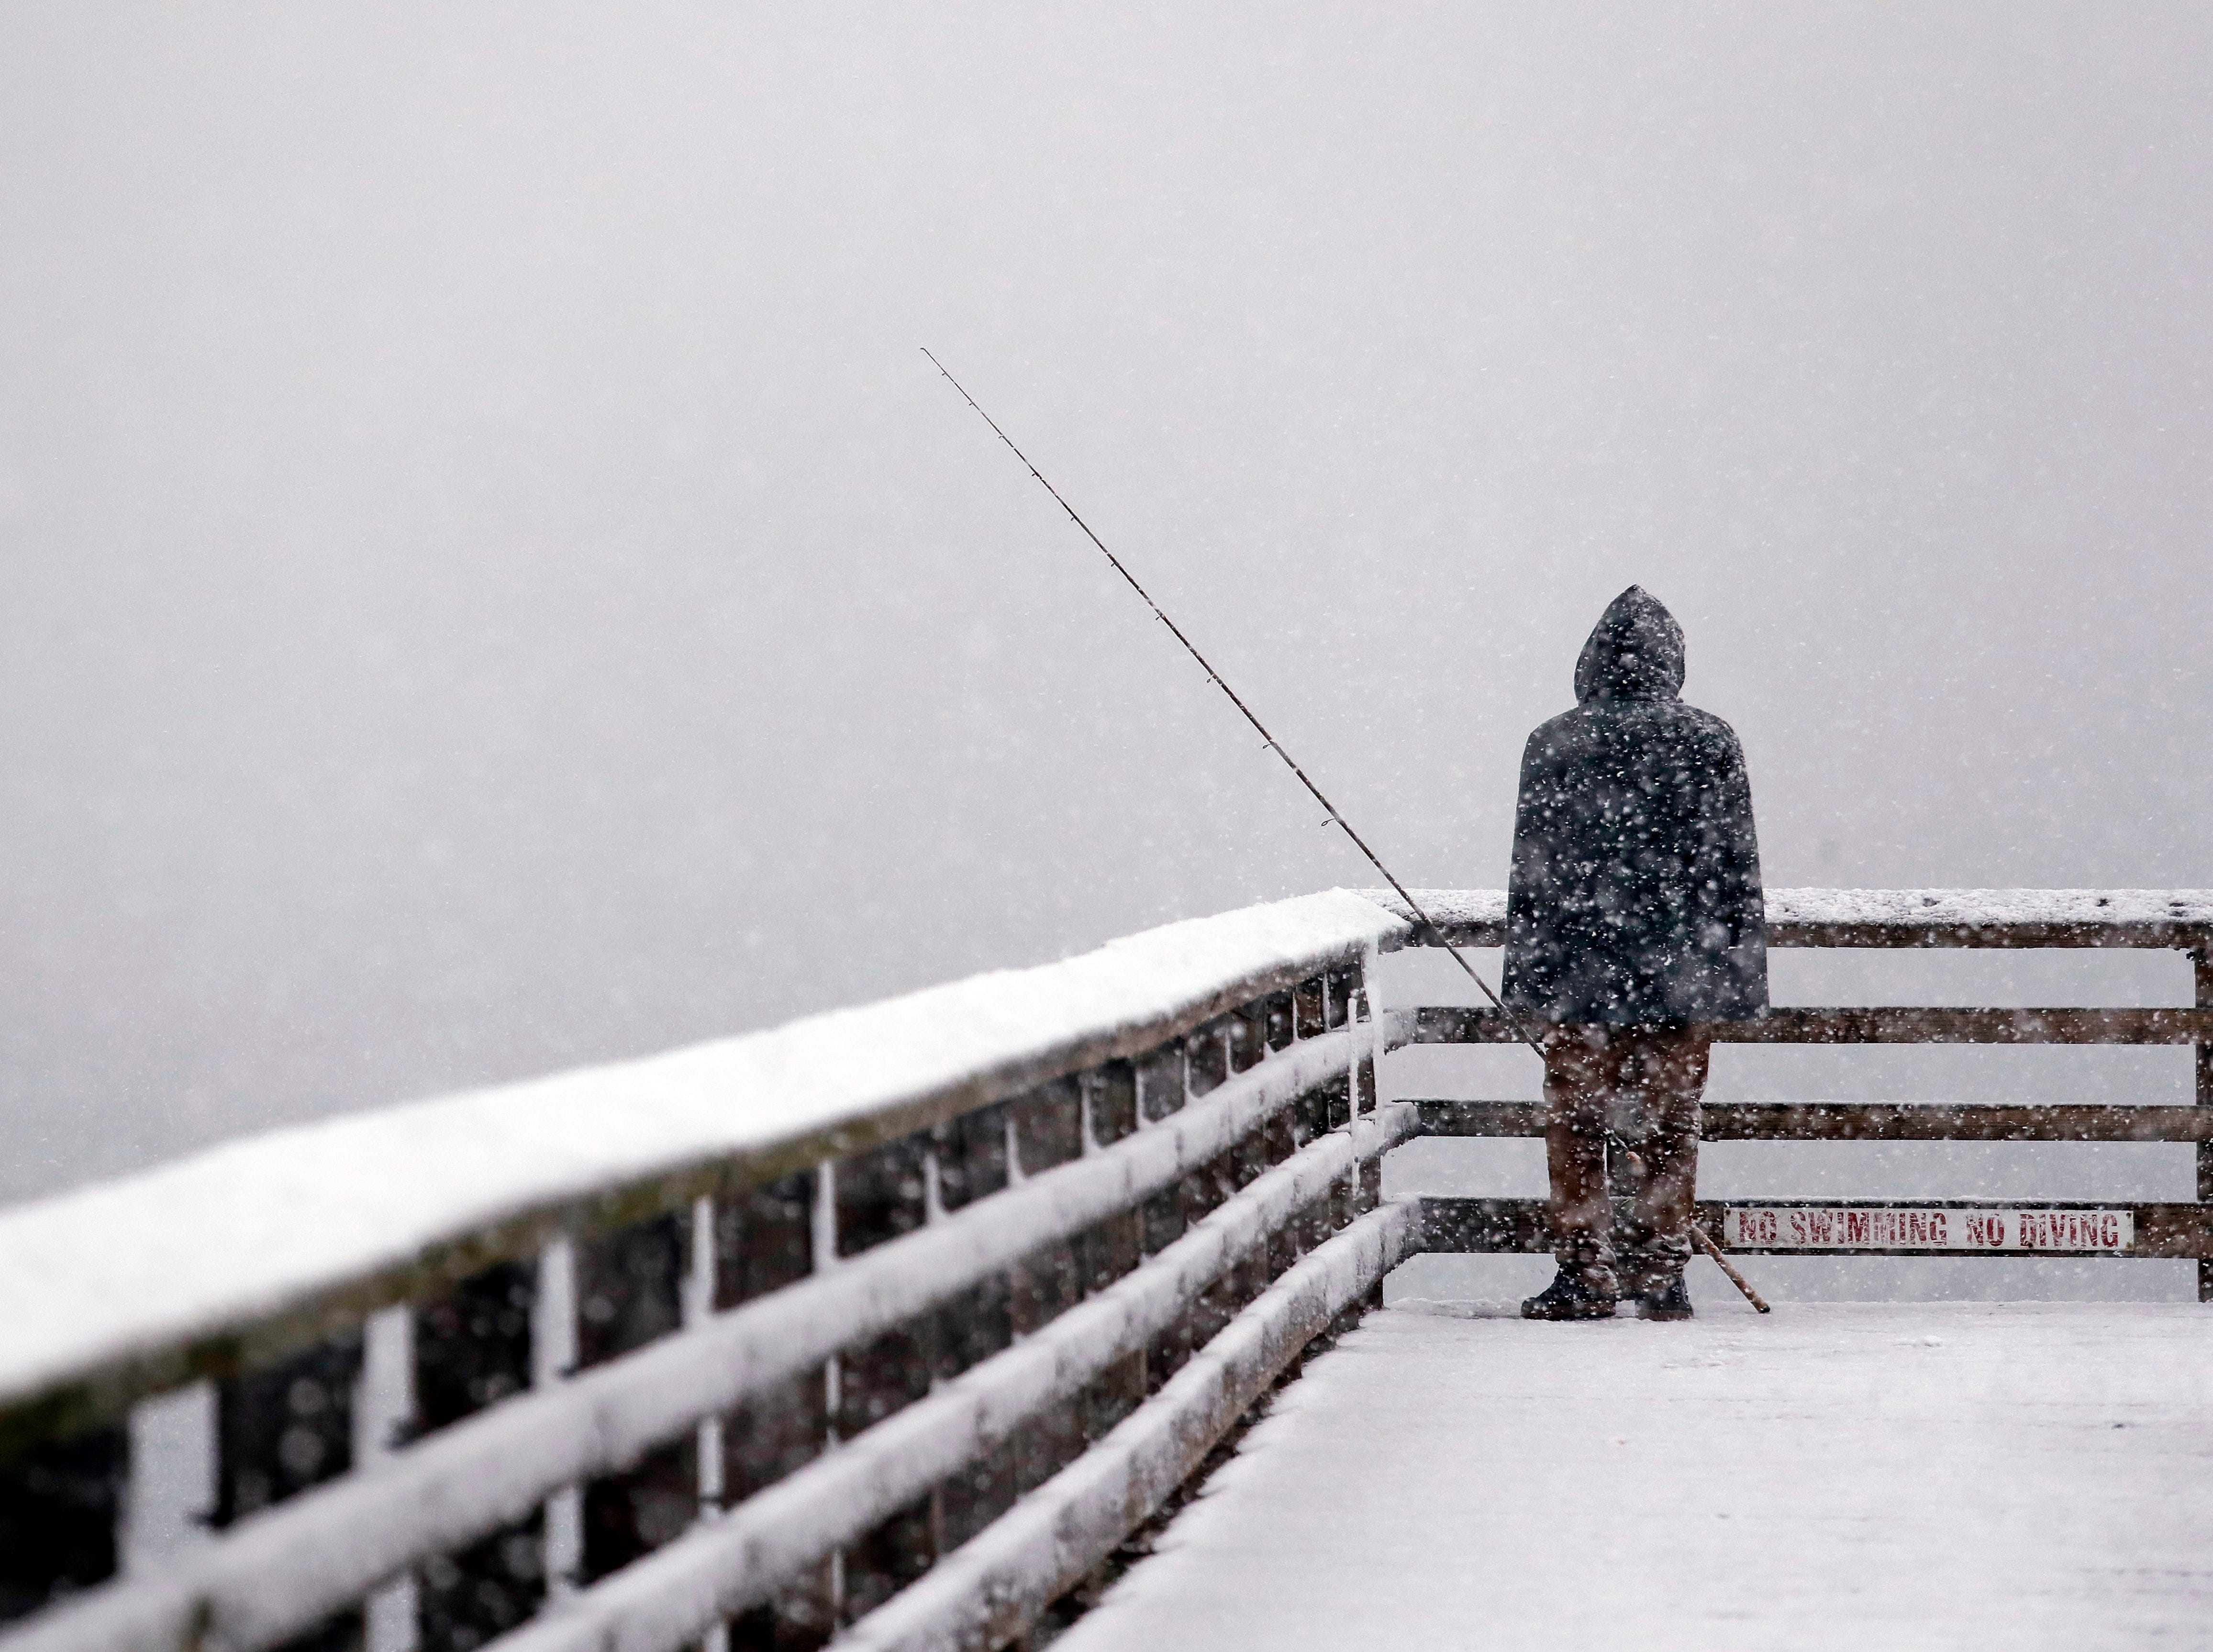 Hershel Odle looks out toward the cityscape lost in a whiteout as he fishes from a pier during a snowstorm Friday, Feb. 8, 2019, in Seattle. Officials have issued a winter storm warning for the Puget Sound region including Seattle. The National Weather Service said the warning will be in effect from noon Friday to noon Saturday, with snow accumulations of 4 to 6 inches expected in the interior lowland areas.